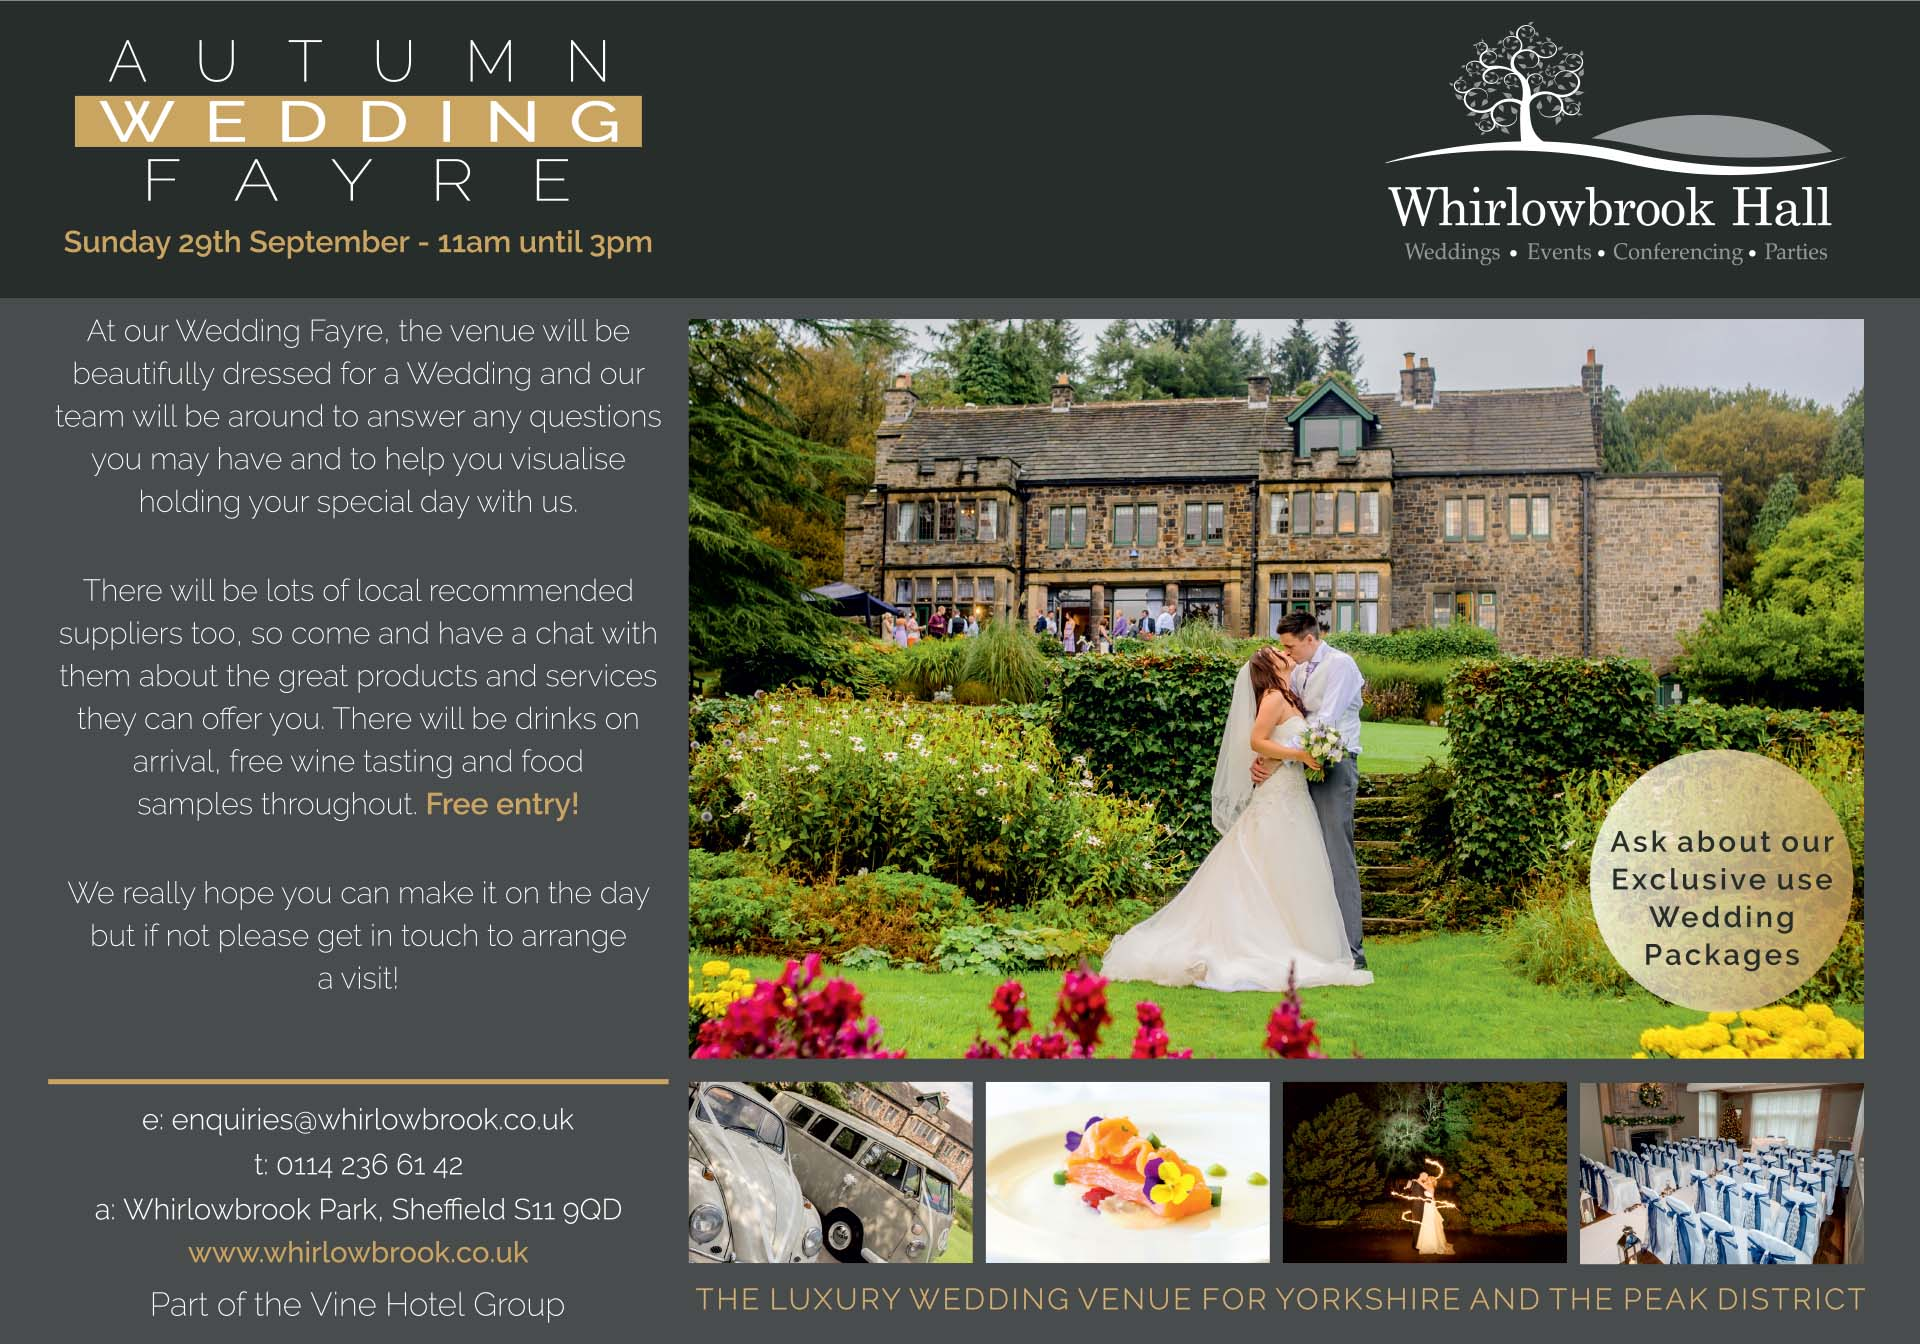 Luxury Party venues for Yorkshire and The Peak District Whirlowbrook Hall